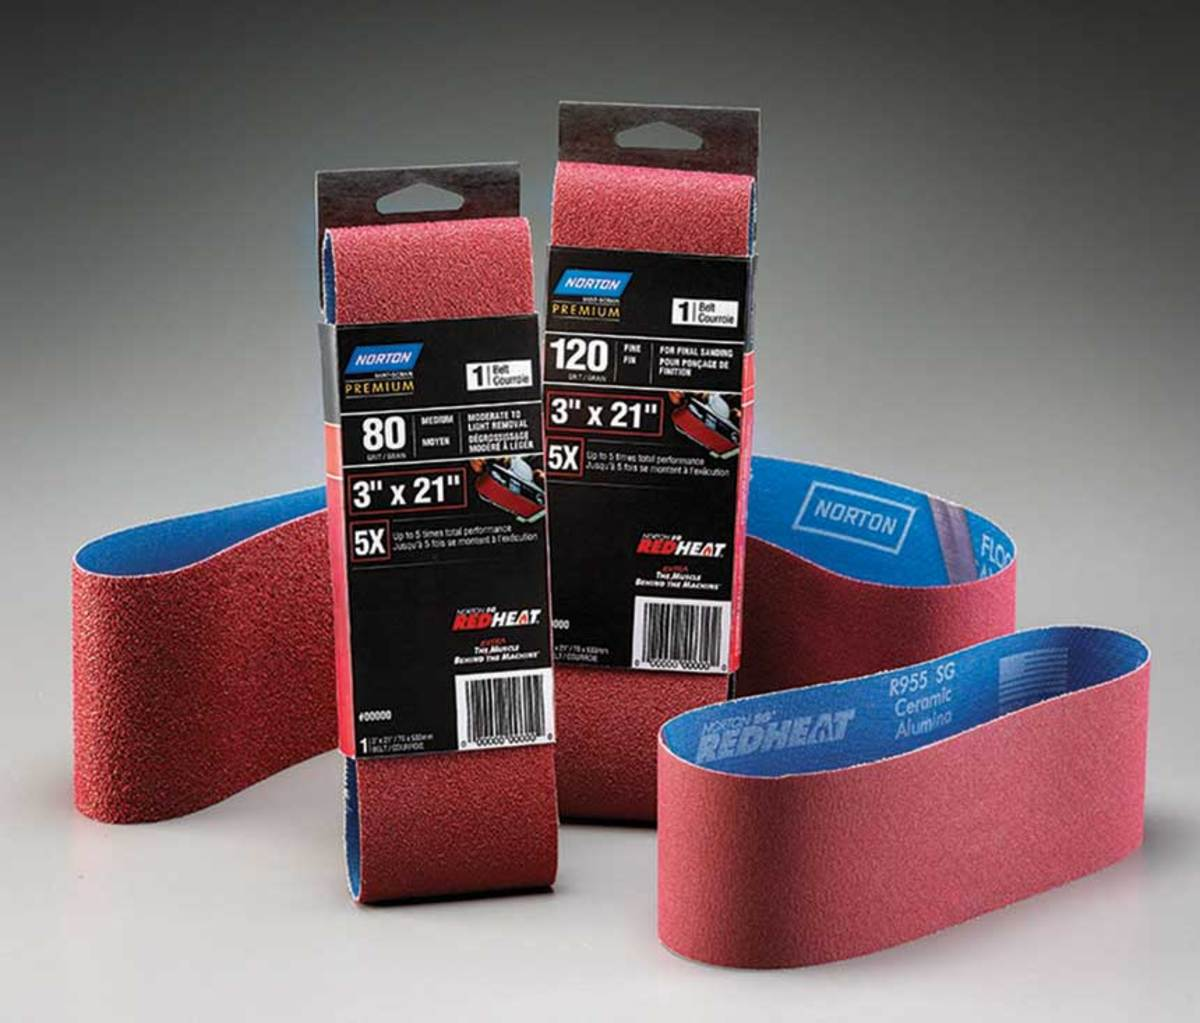 Red Heat ceramic alumina belts from Norton